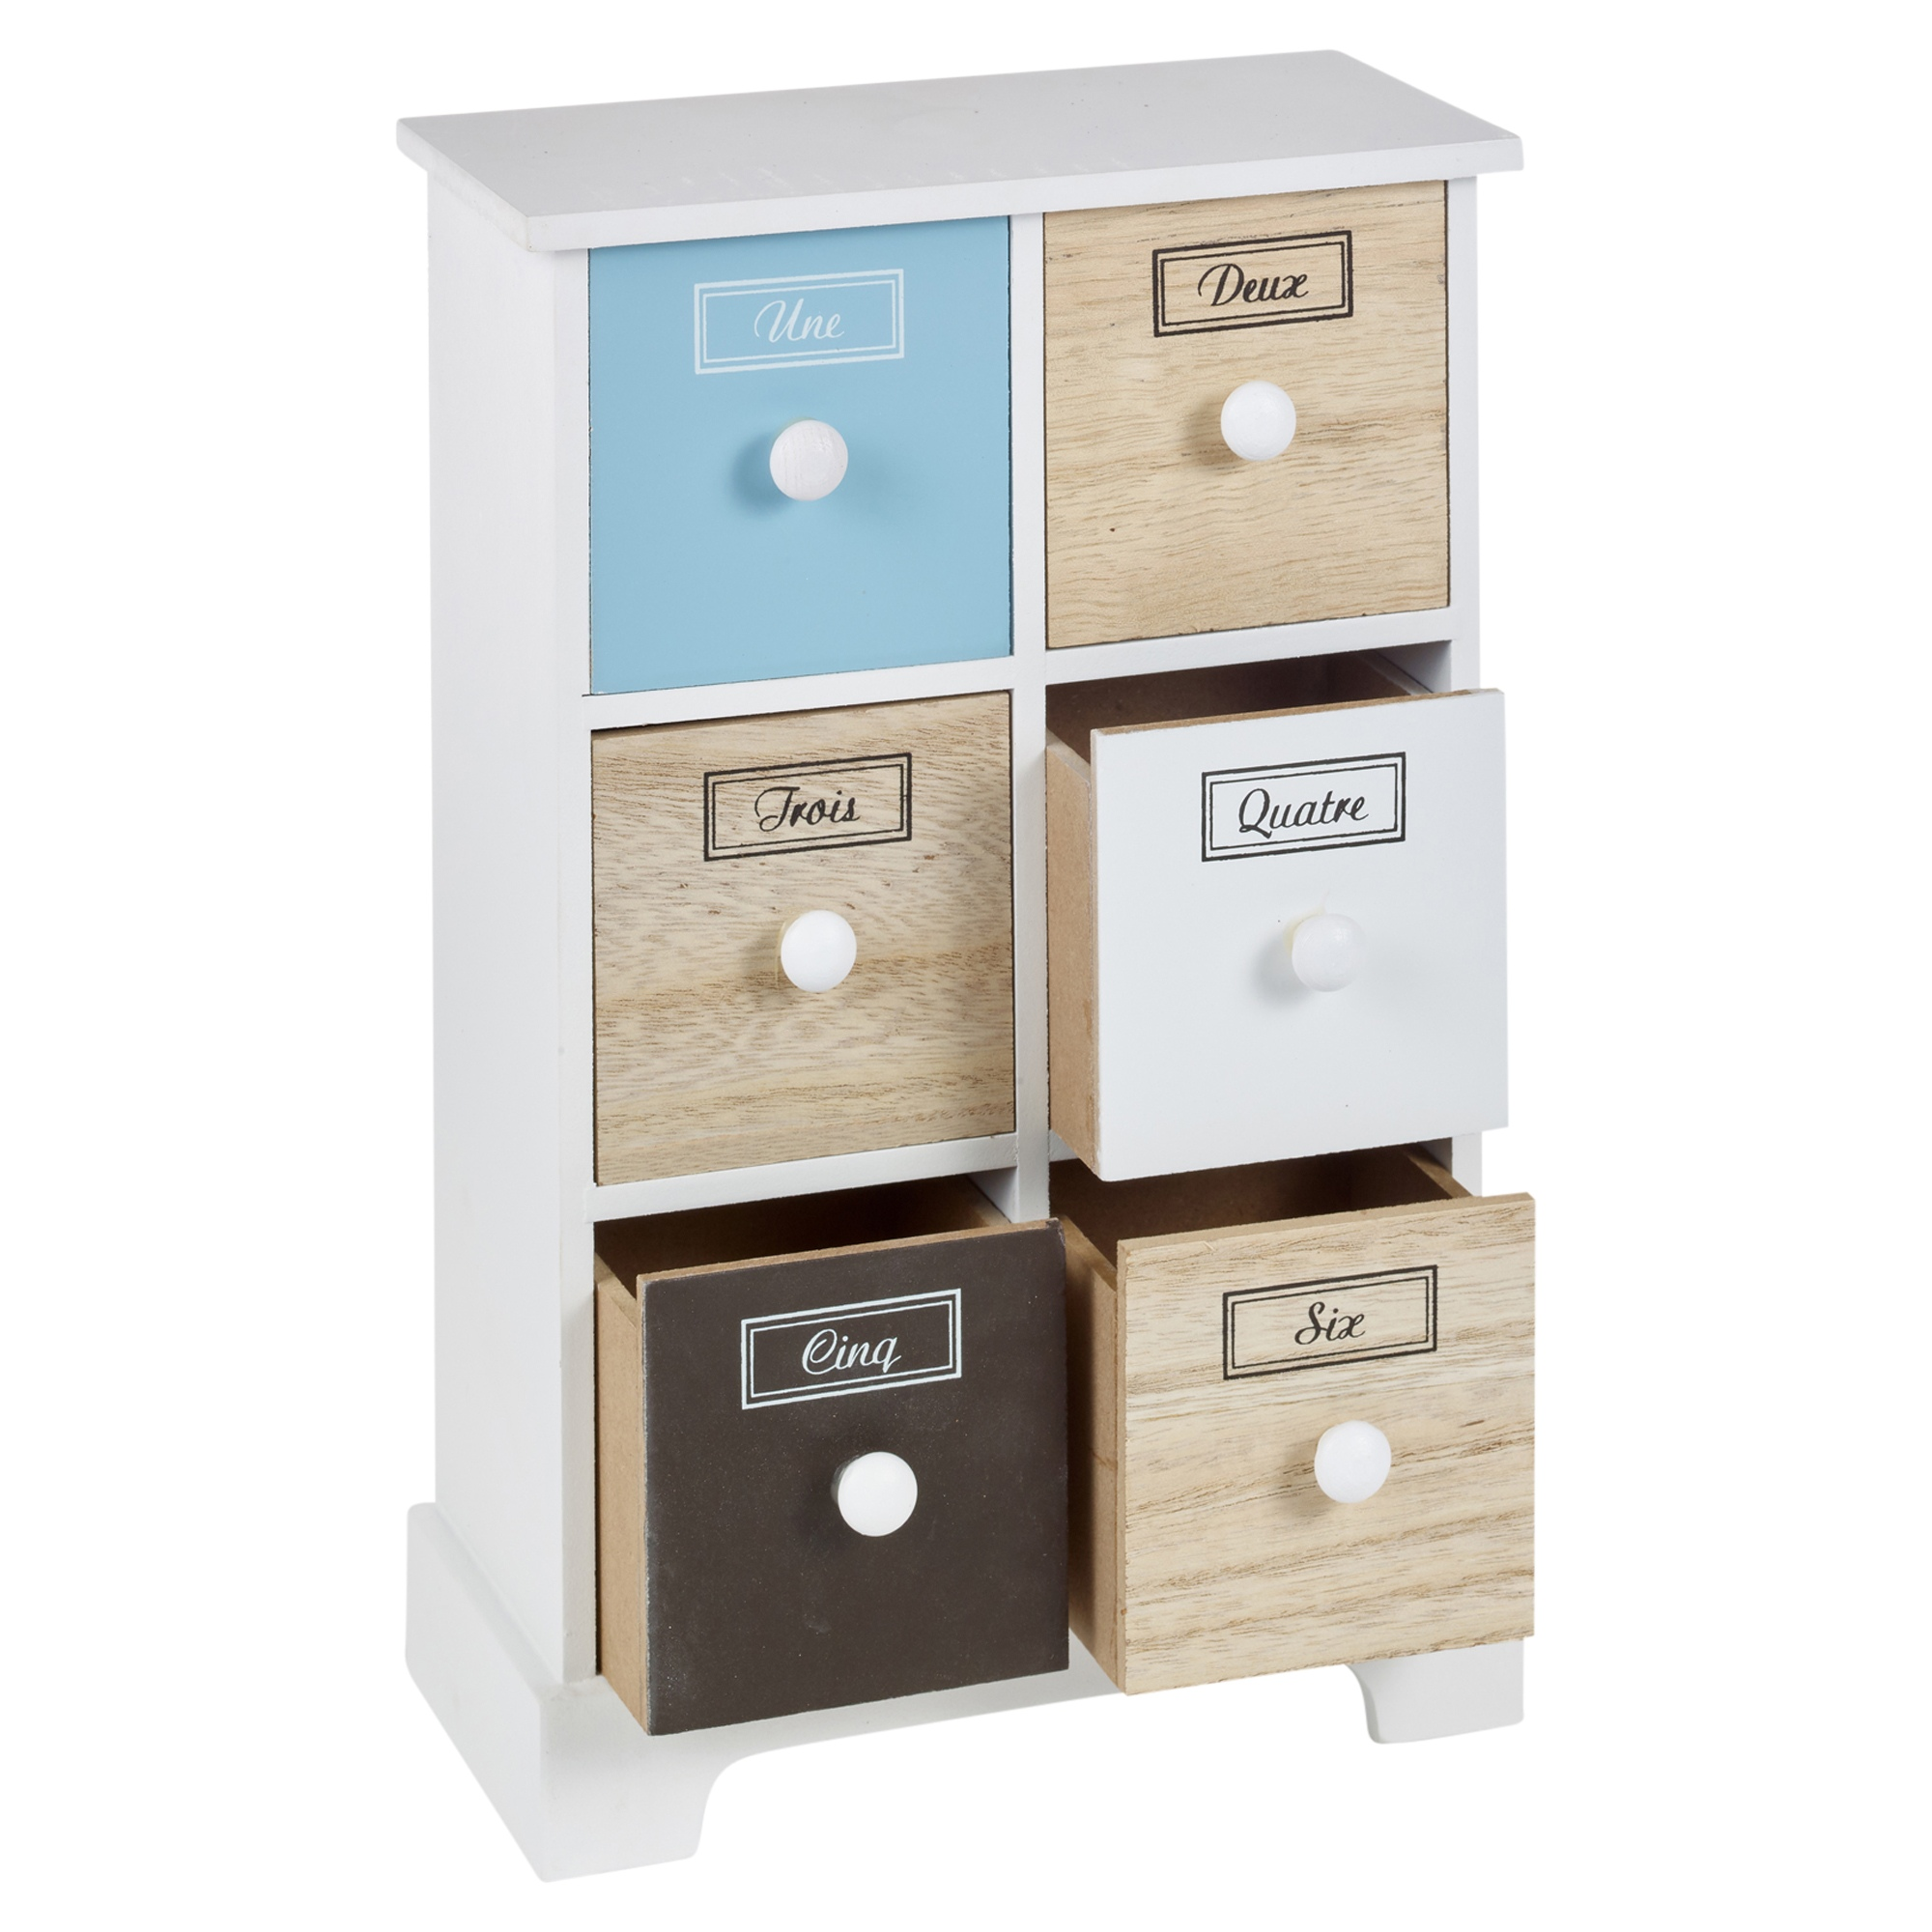 drawer multi teacher inc cabinet upright drawers storage getbackinc back art product wooden vintage s get class